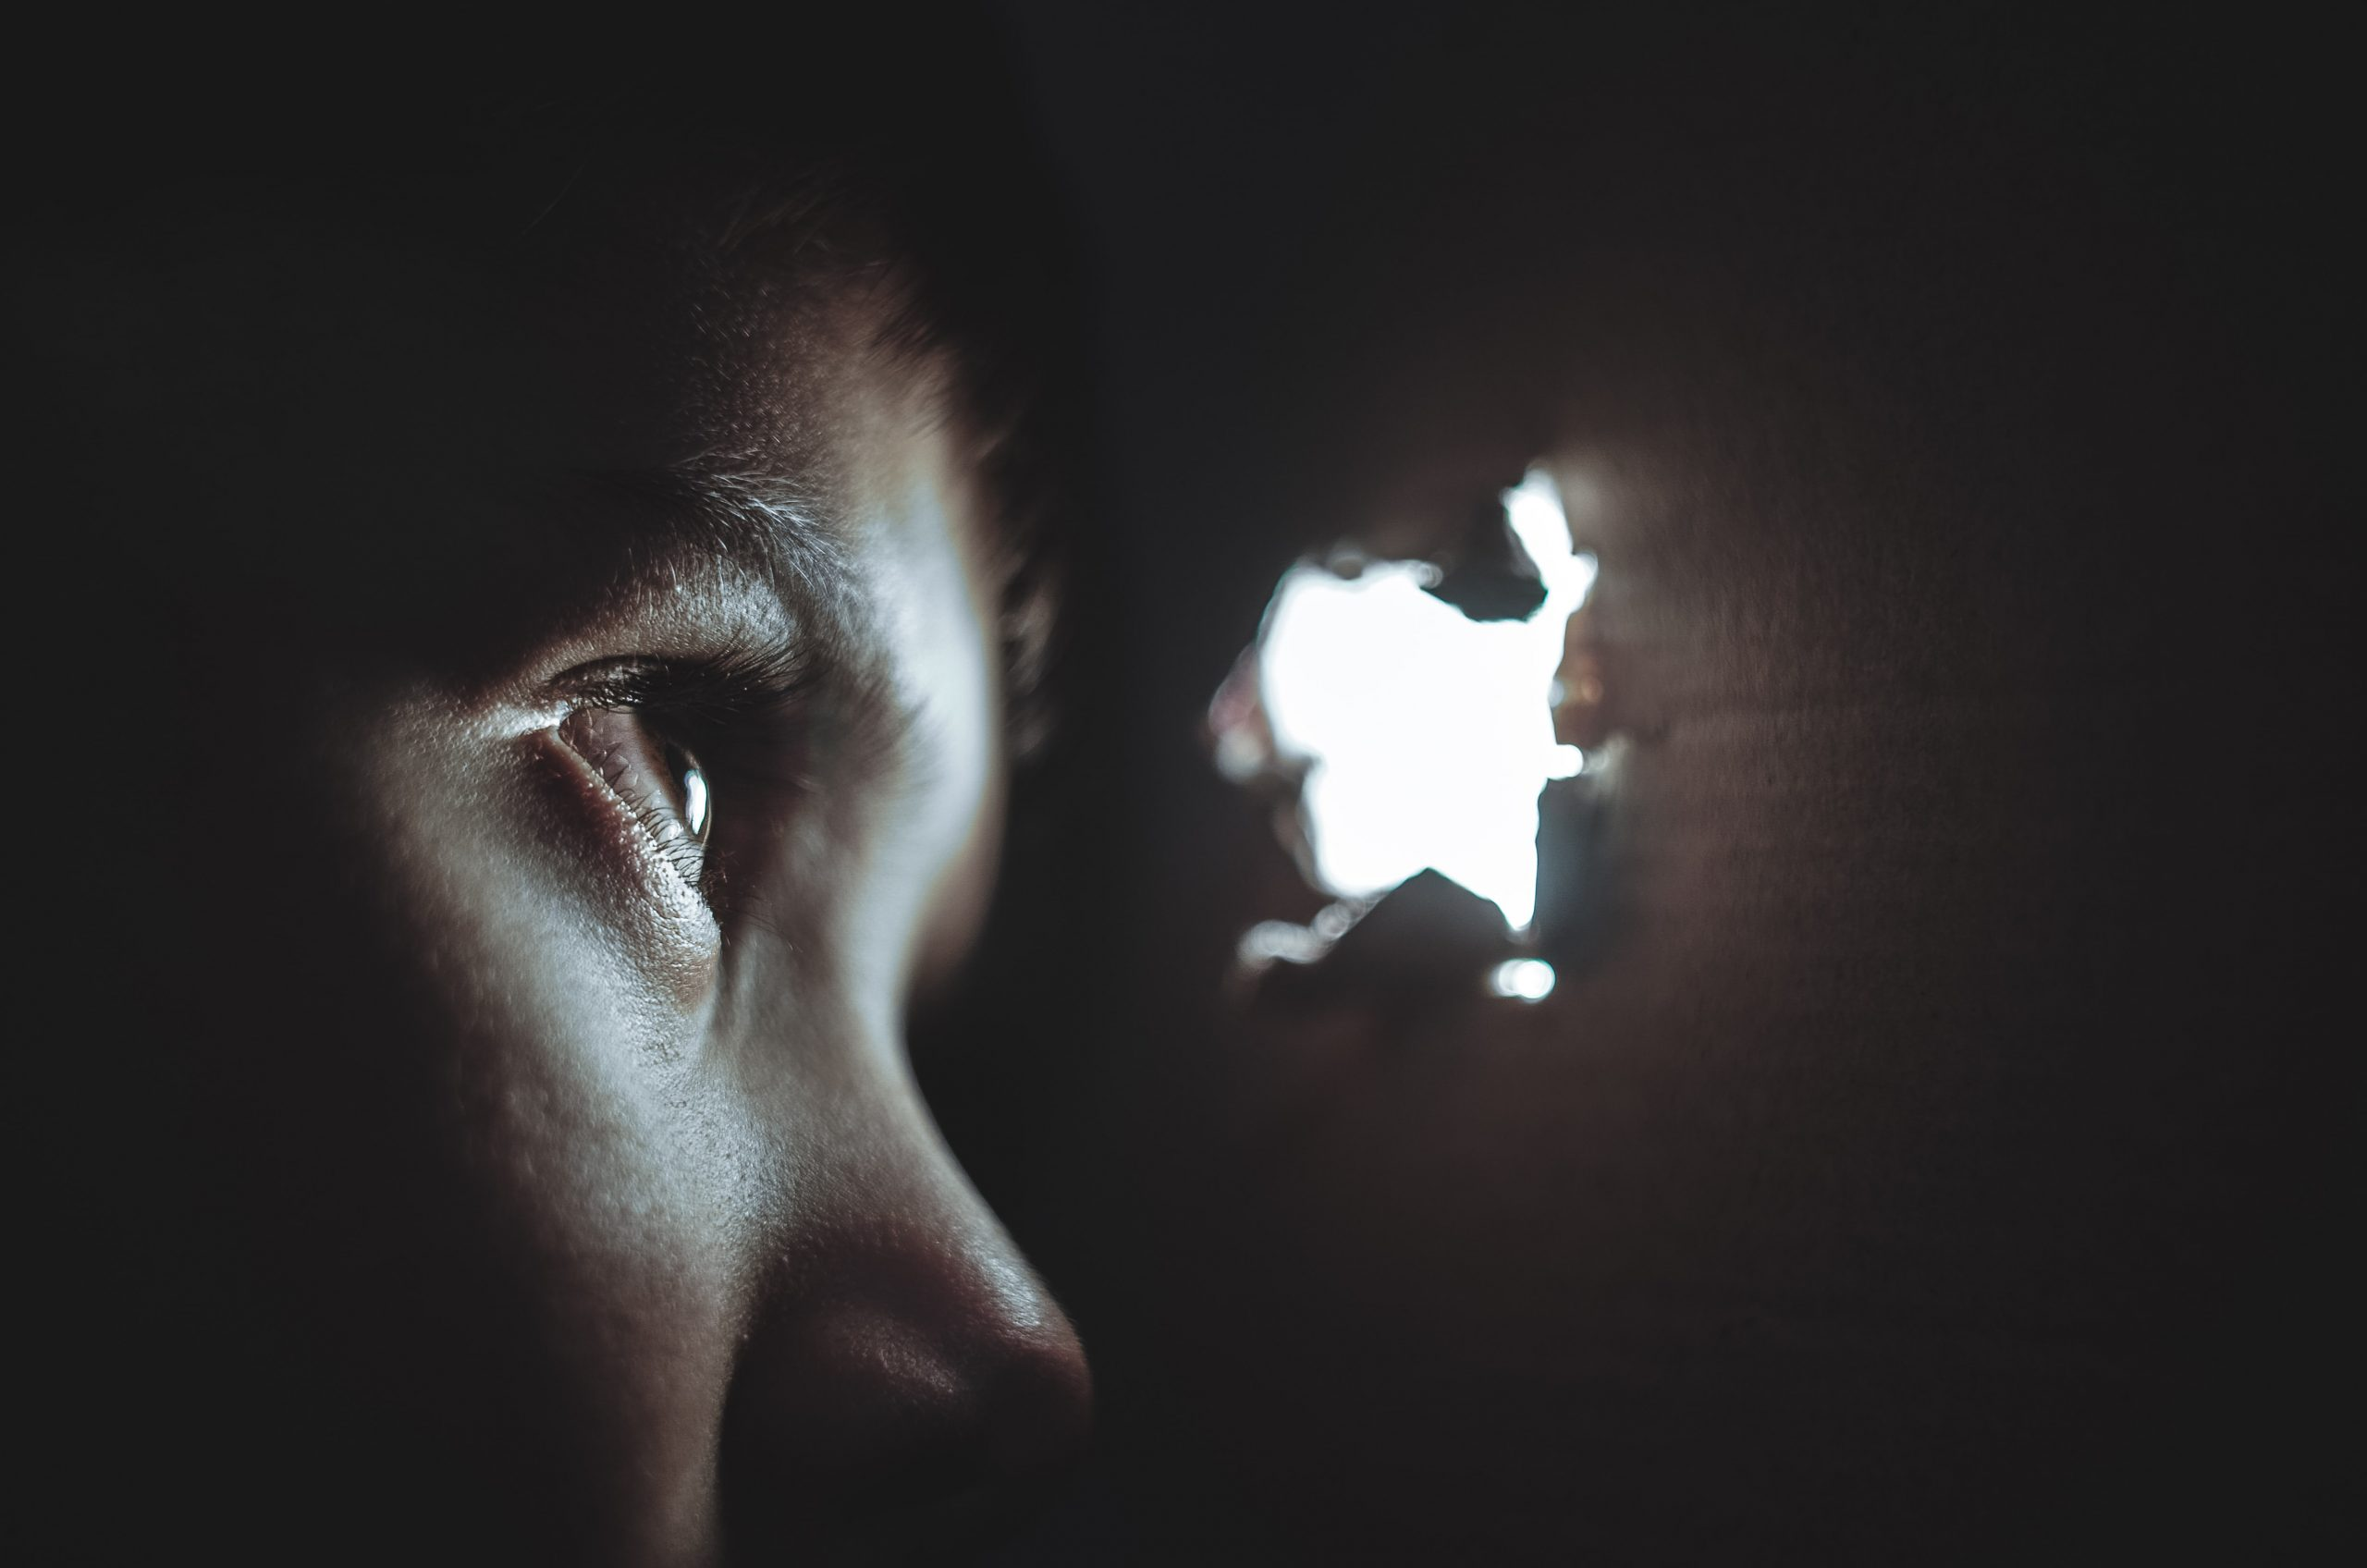 Domestic Violence victim looking through a light hole